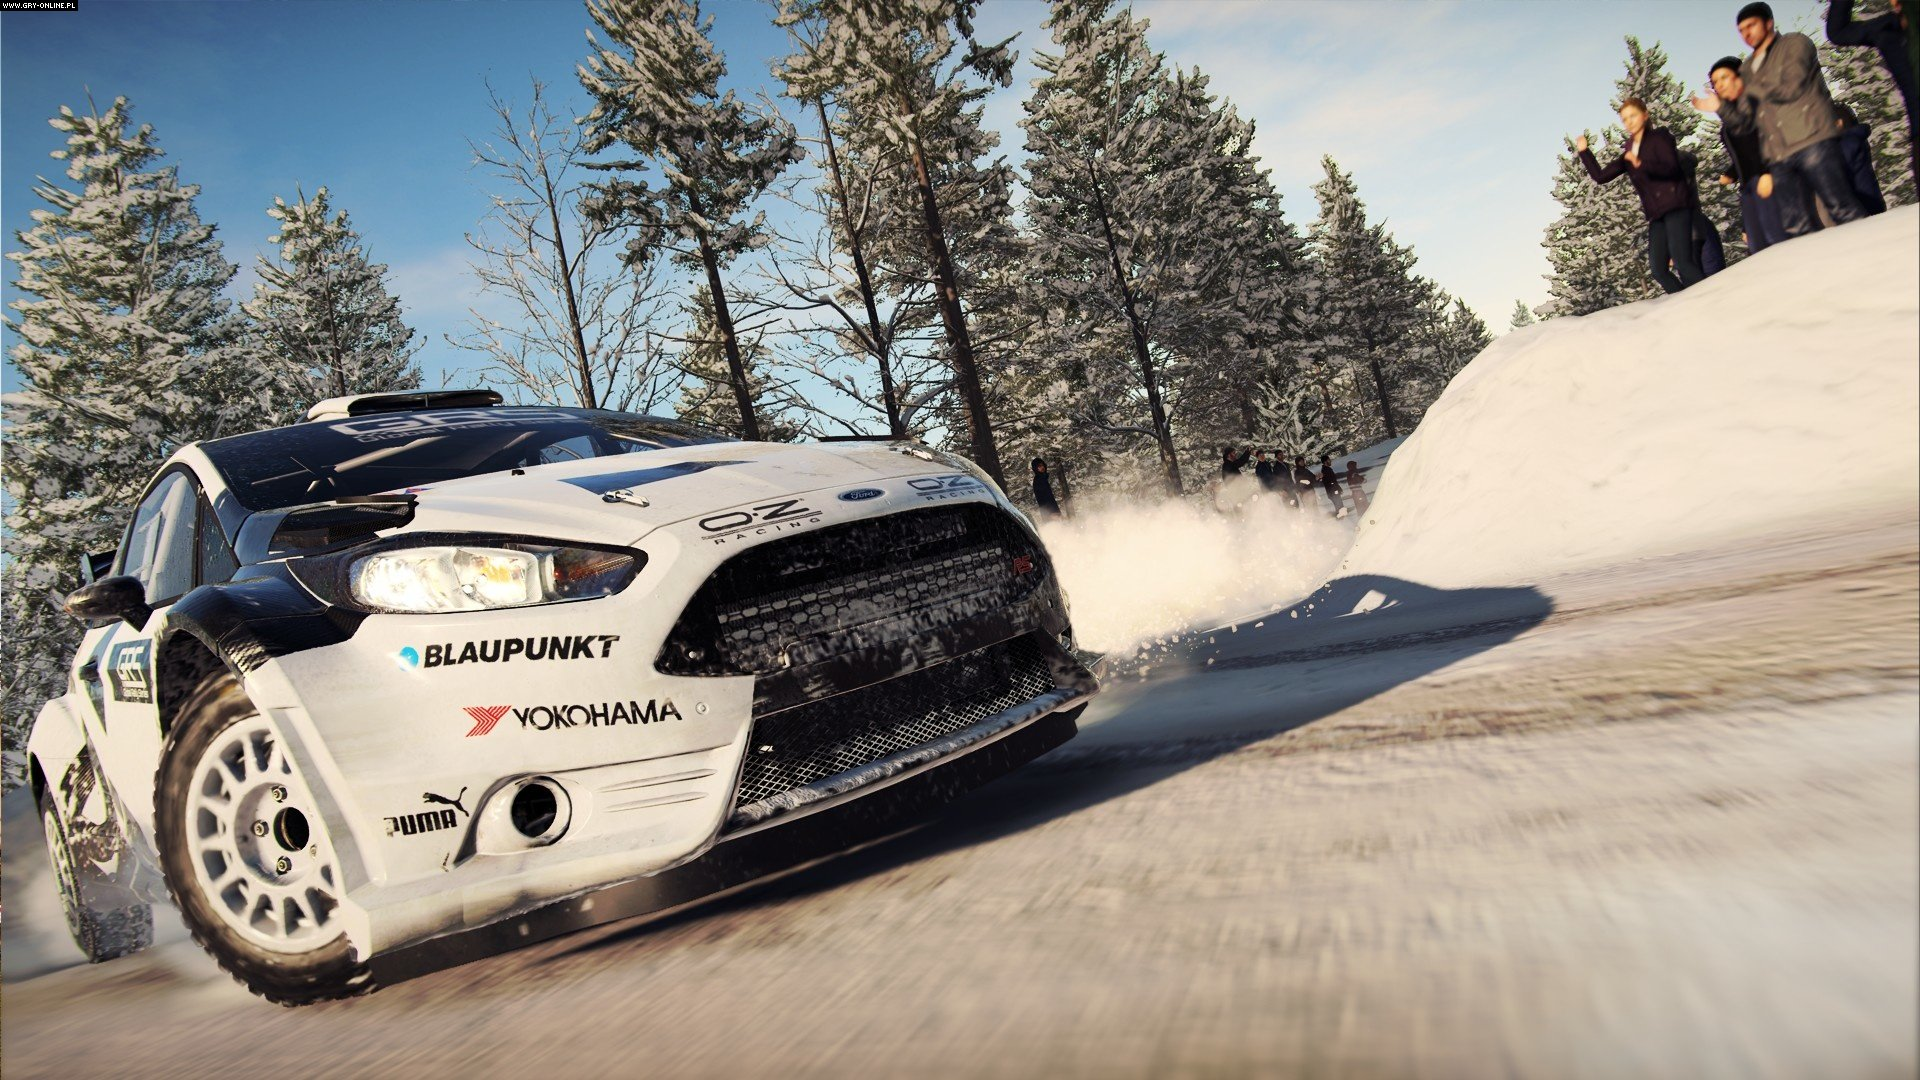 DiRT 4 PC, PS4, XONE Games Image 1/66, Codemasters Software